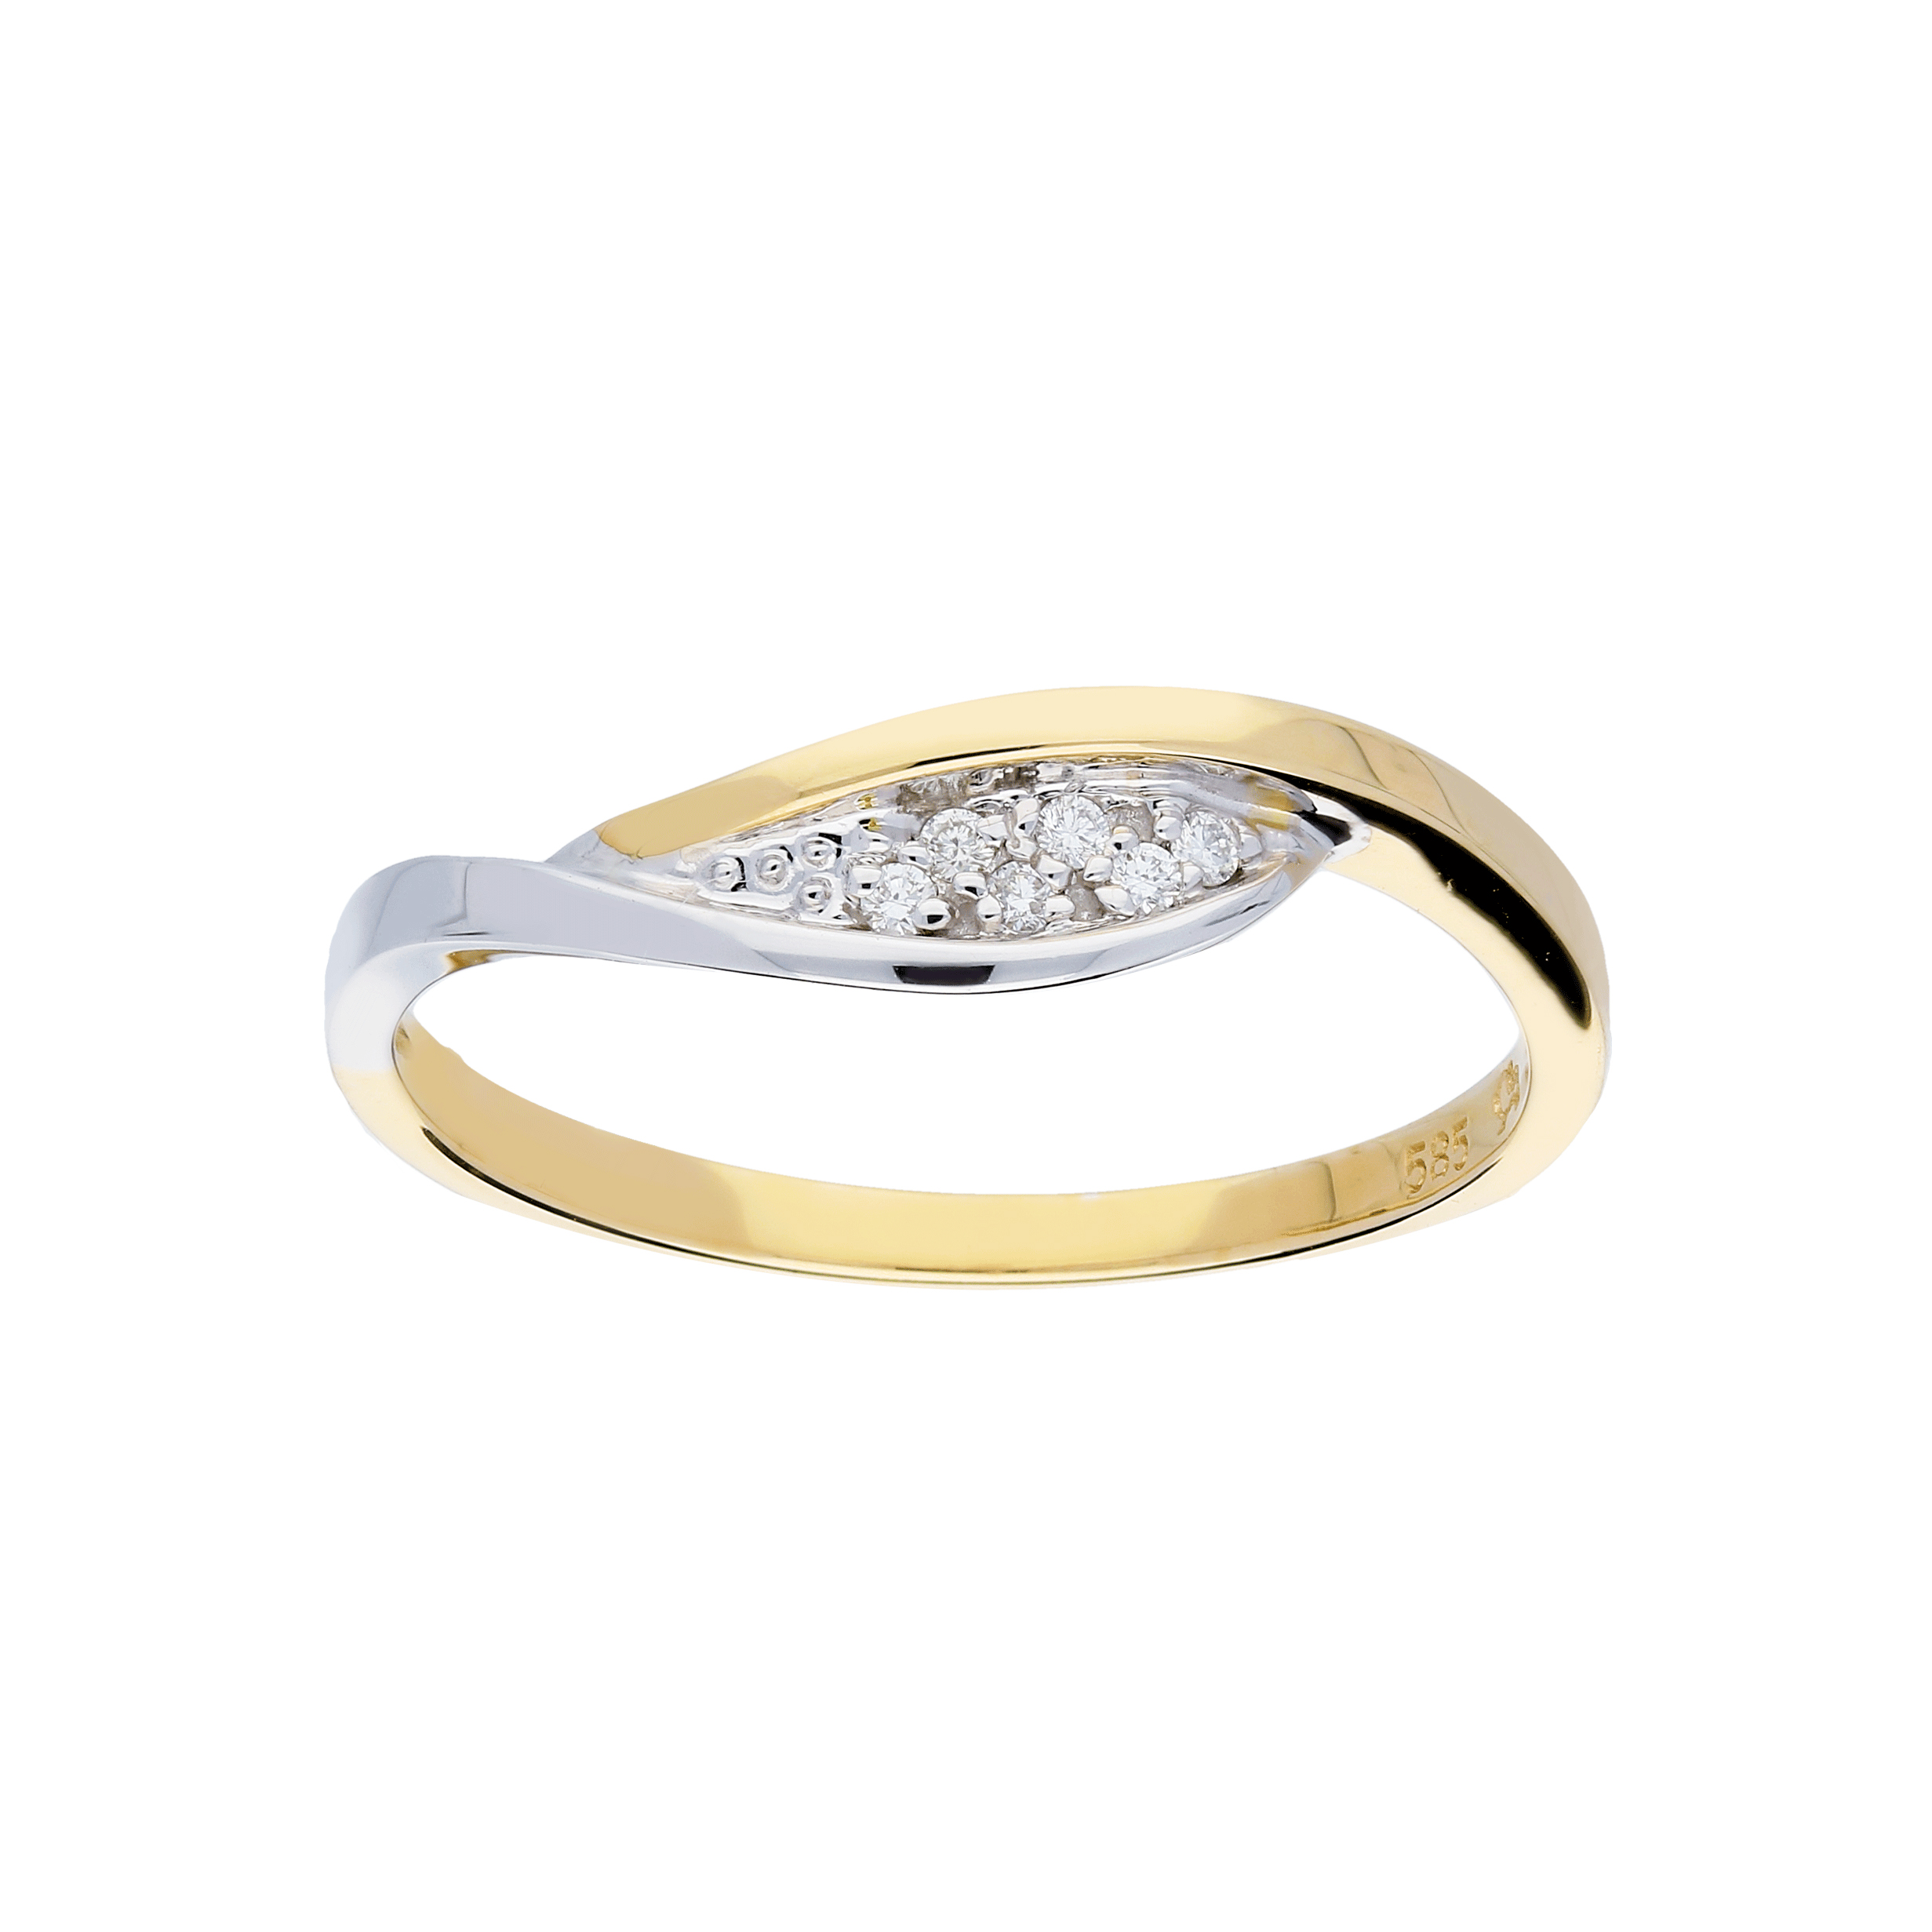 Glow Gouden Ring Bicolor Glanzend Diamant 6 0.045ct G si 214.5219.52